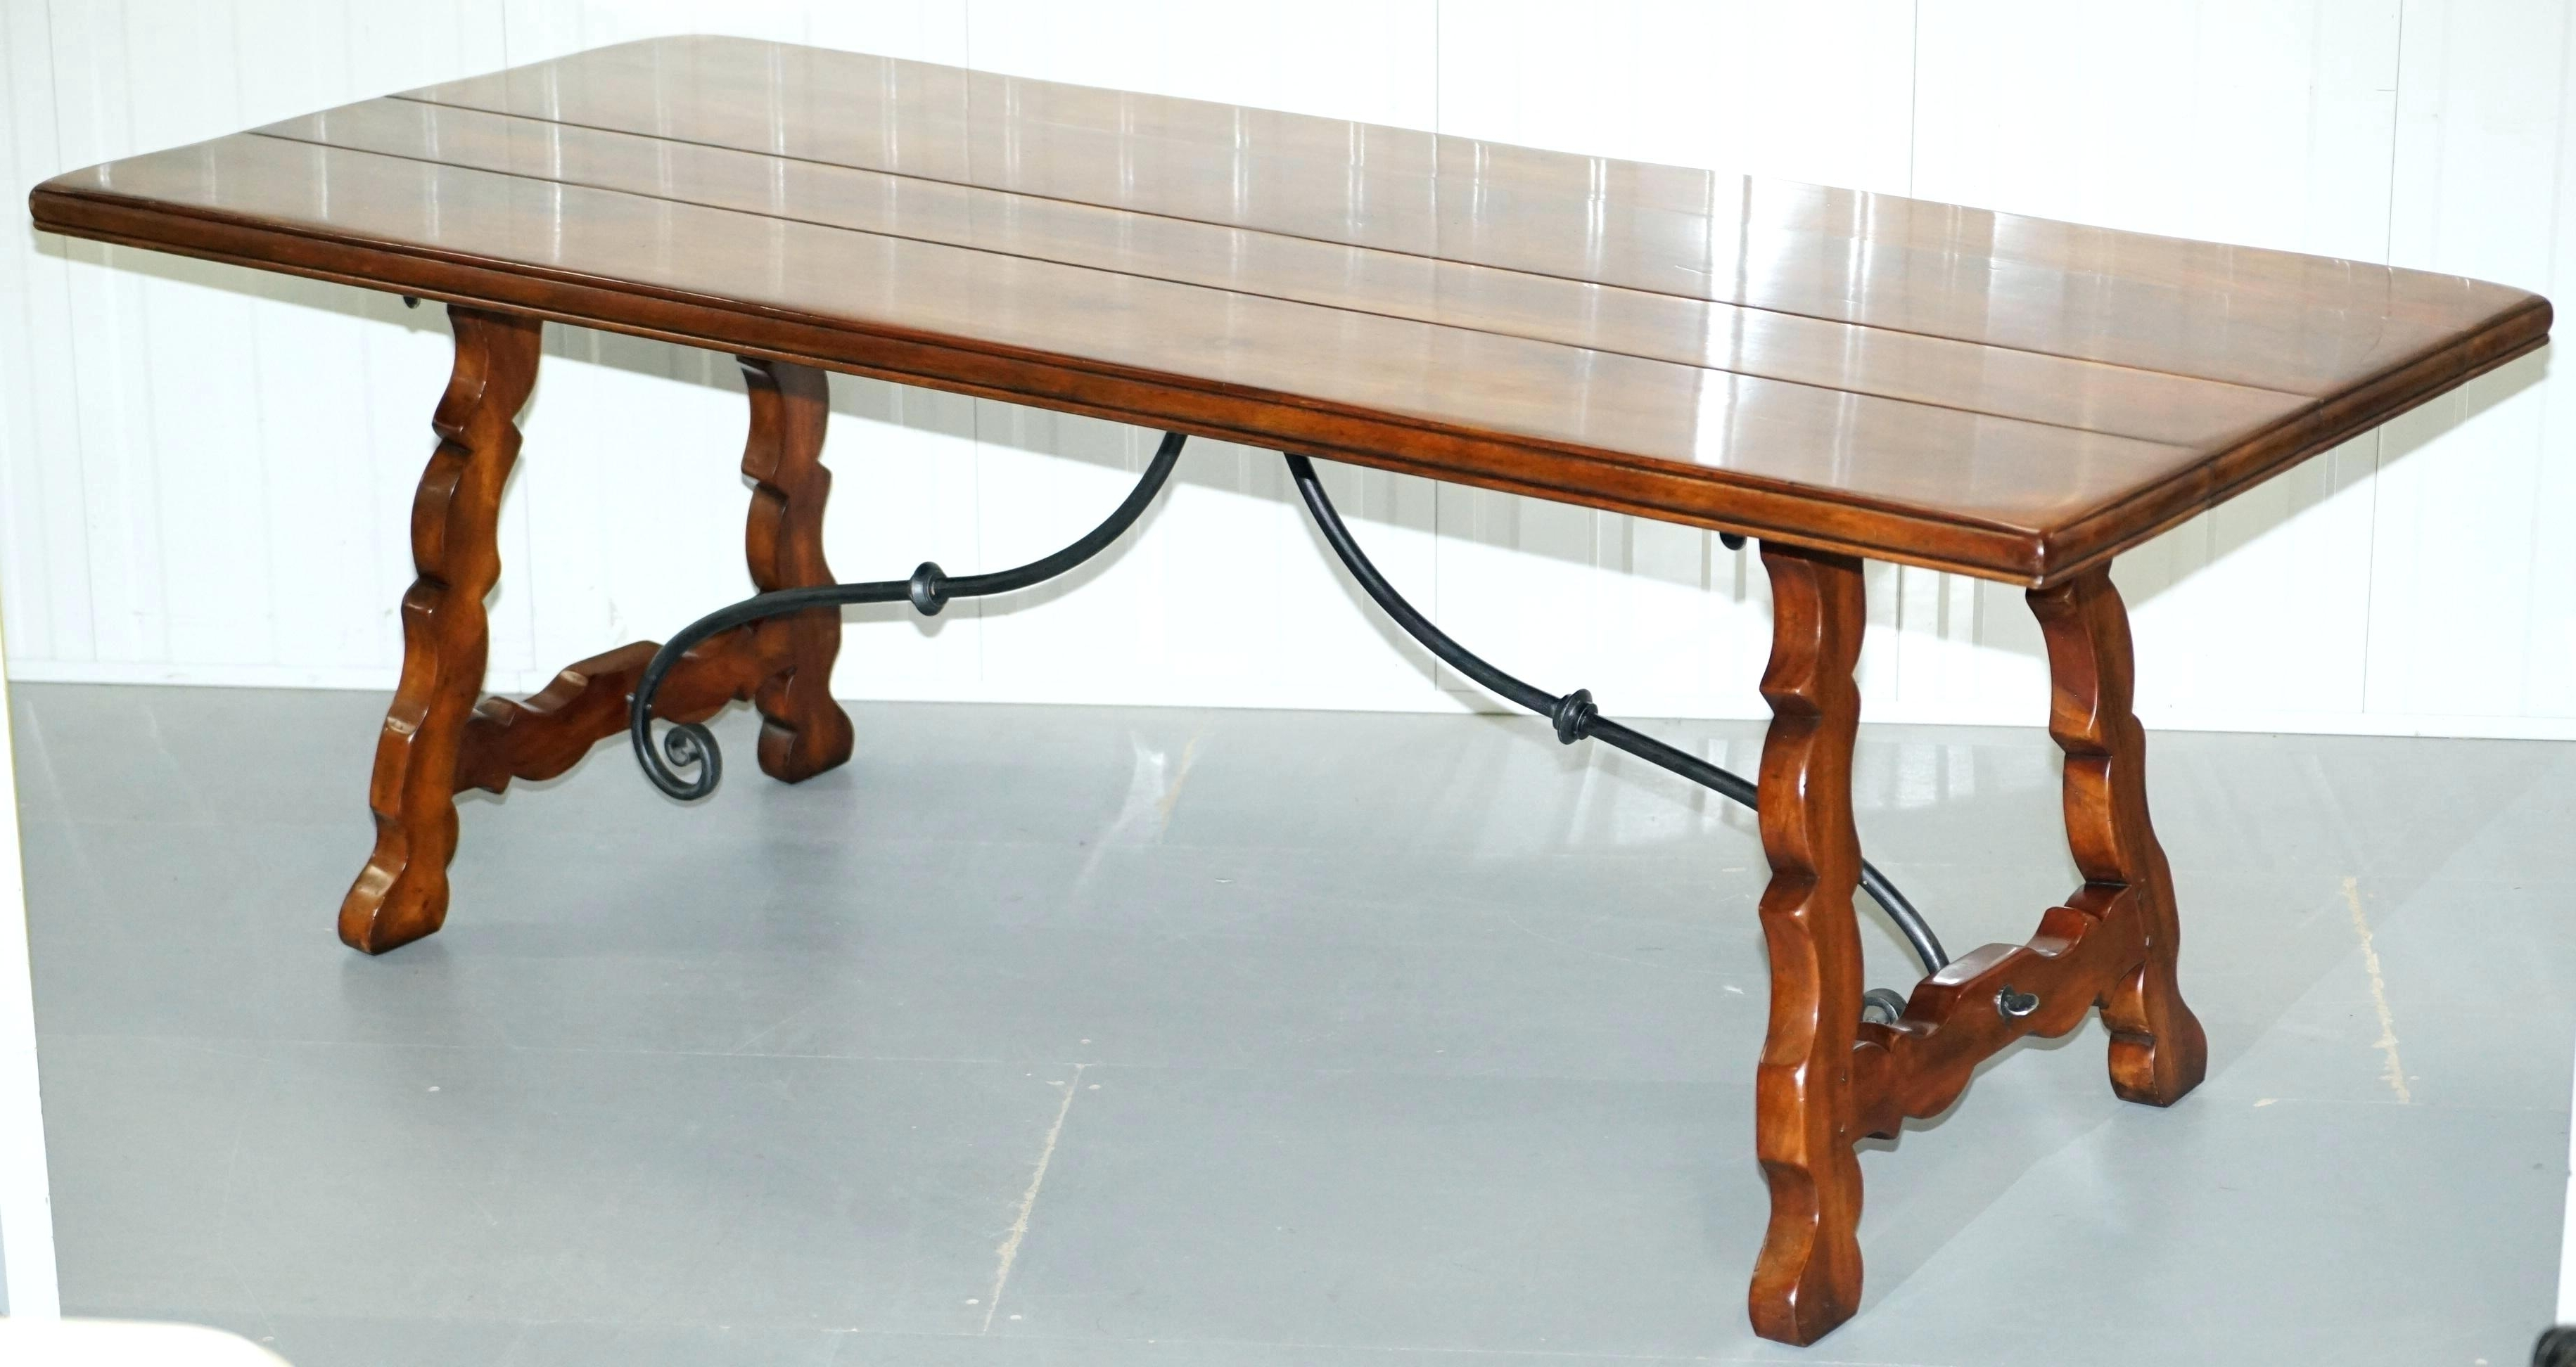 Helms Rectangle Dining Tables In Famous Theodore Alexander Dining Tables Theodore Alexander Sylvan Dining (View 4 of 25)